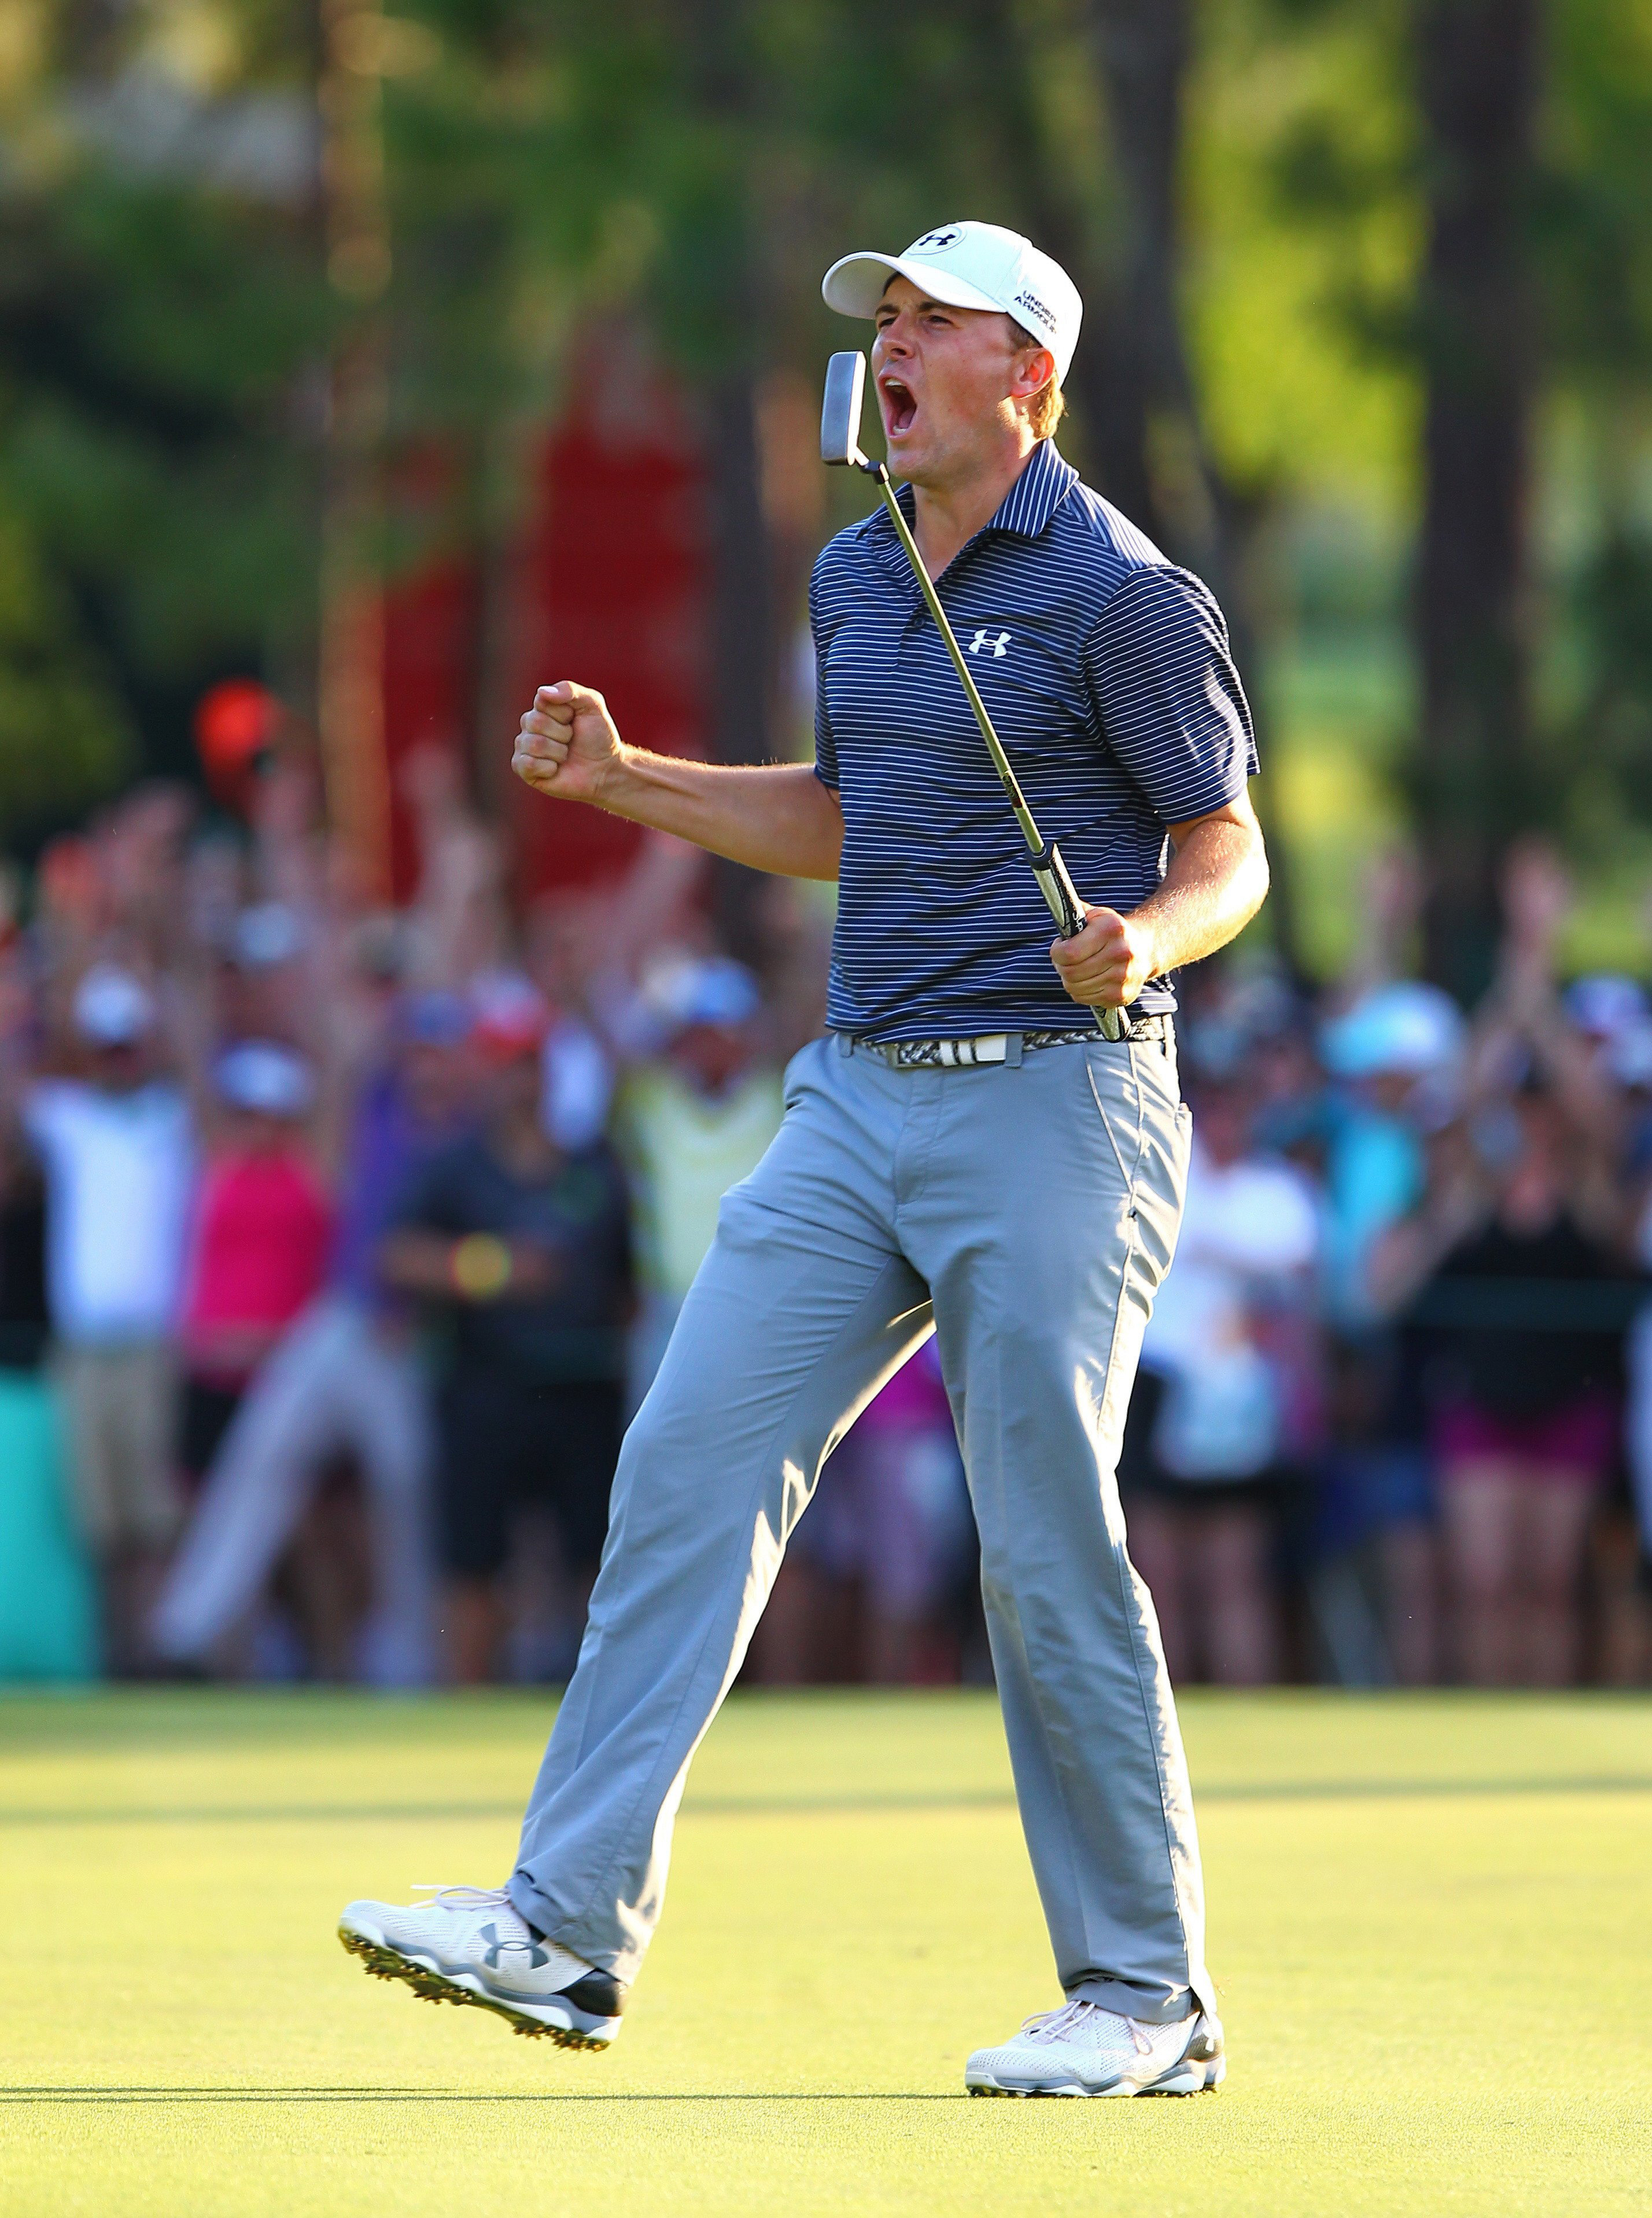 Jordan Spieth celebrates after sinking his final putt to win a three-hole playoff in the fourth round of the 2015 Valspar Championship.